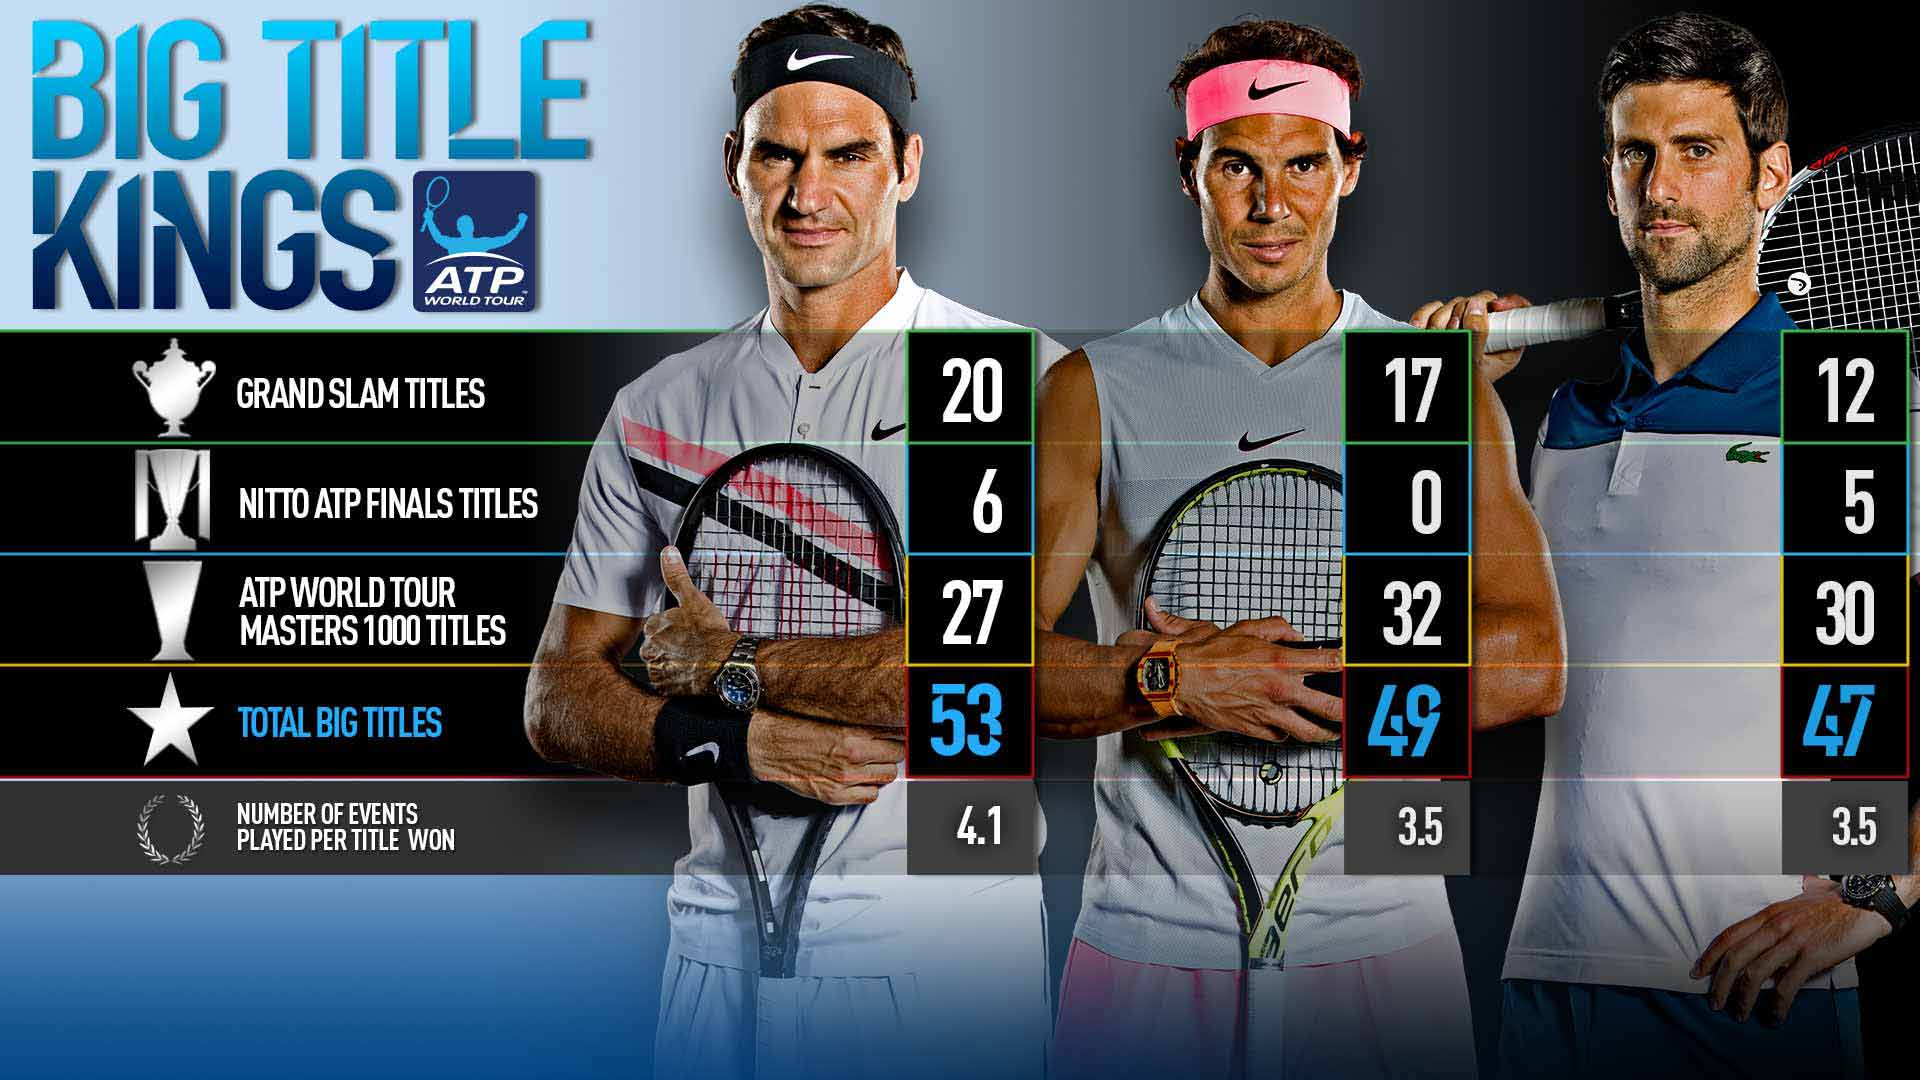 After 11th Roland Garros Title Rafael Nadal Inching Closer To Roger Federer S Leading Big Title Count Atp Tour Tennis